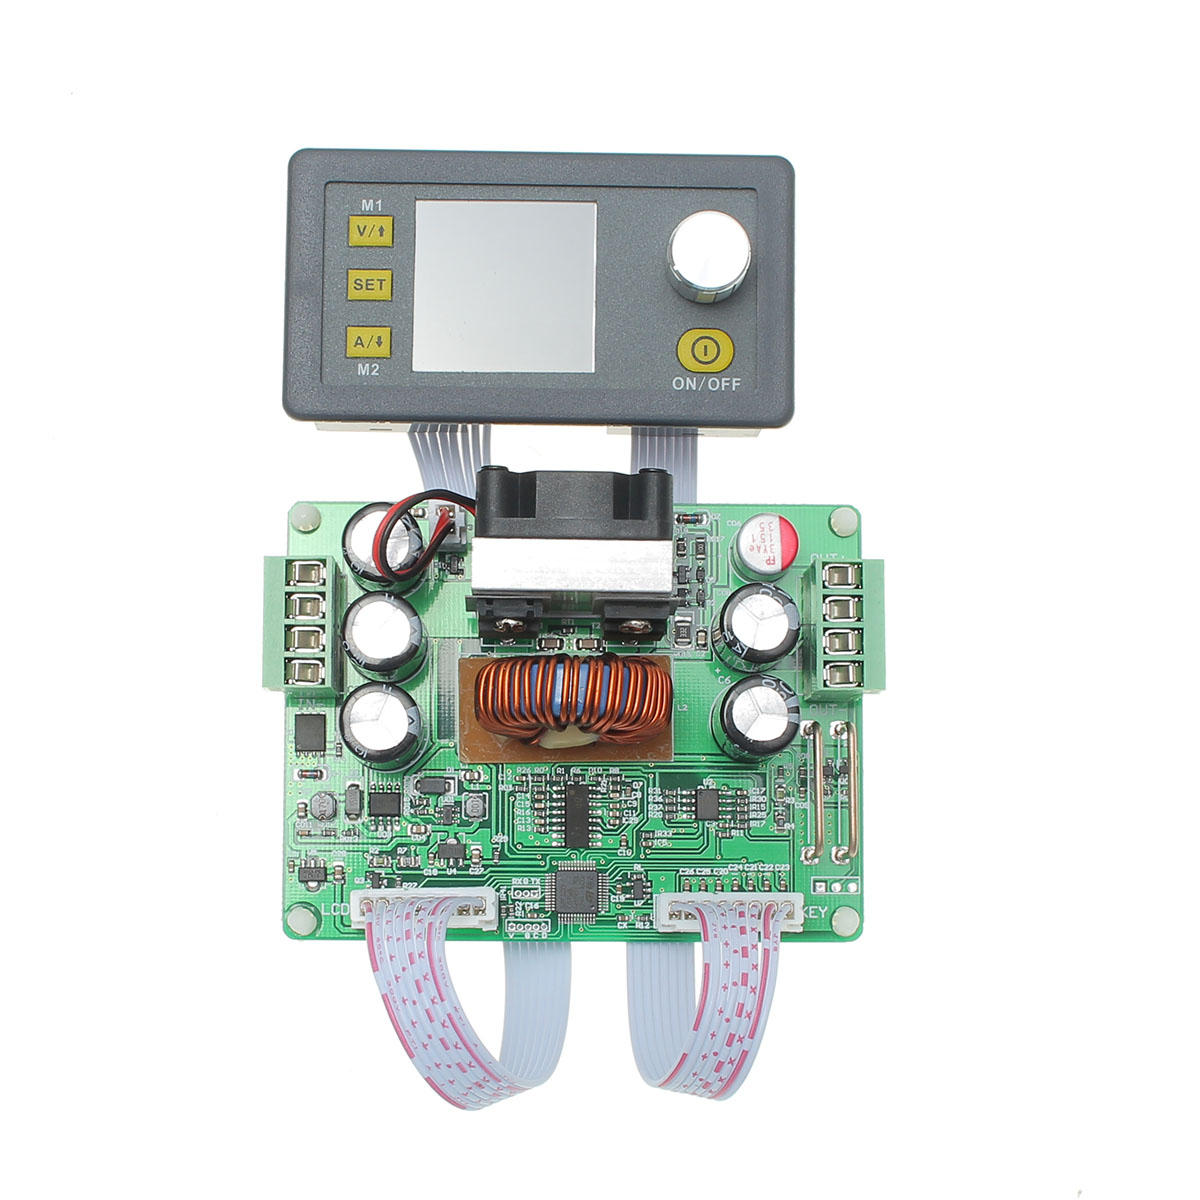 RIDEN® DPS3012 32V 12A Buck Adjustable DC Constant Voltage Power Supply Module Integrated Voltmeter Ammeter With Color Display